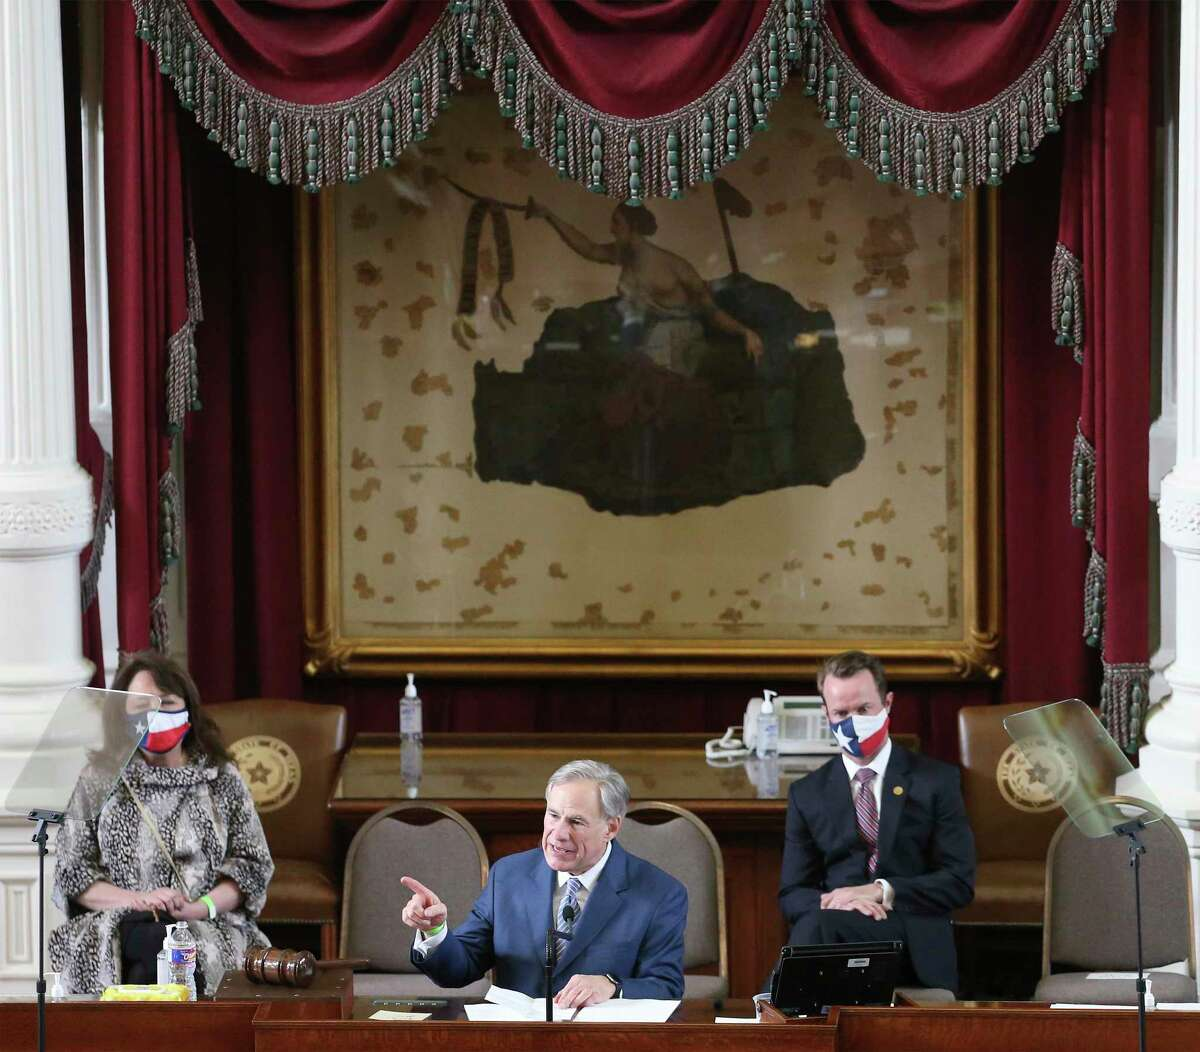 Texas Governor Greg Abbott delivers a speech to kick off the 87th Legislature. We expect lots of political posturing when energy could be spent on real issues. C'mon Lege, surprise us.